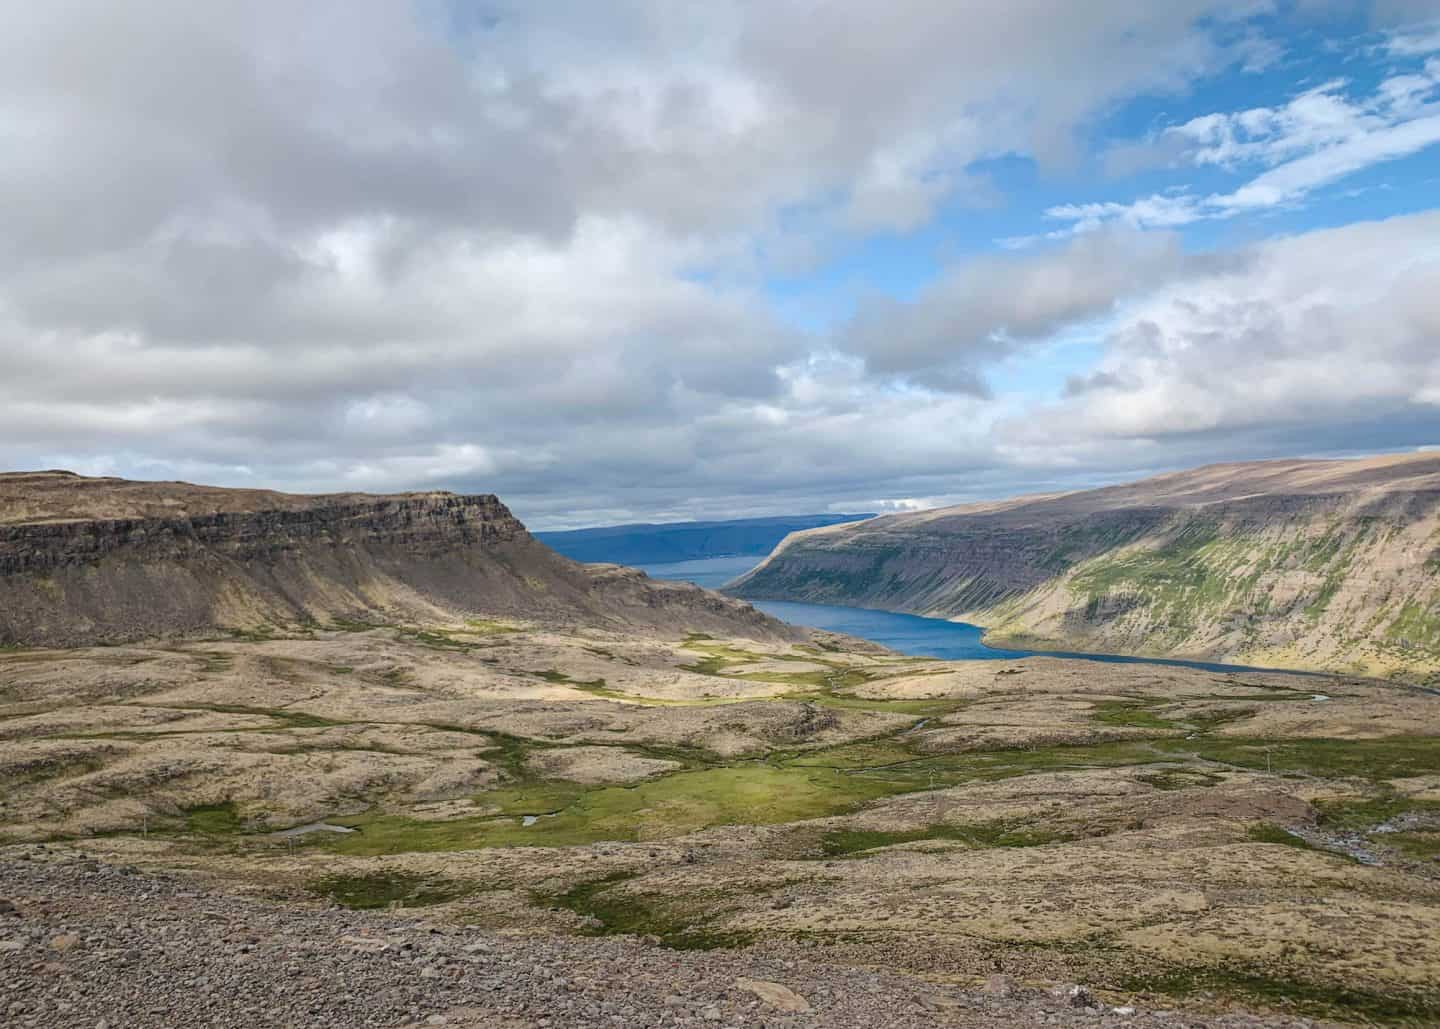 Driving along Iceland's Ring Road